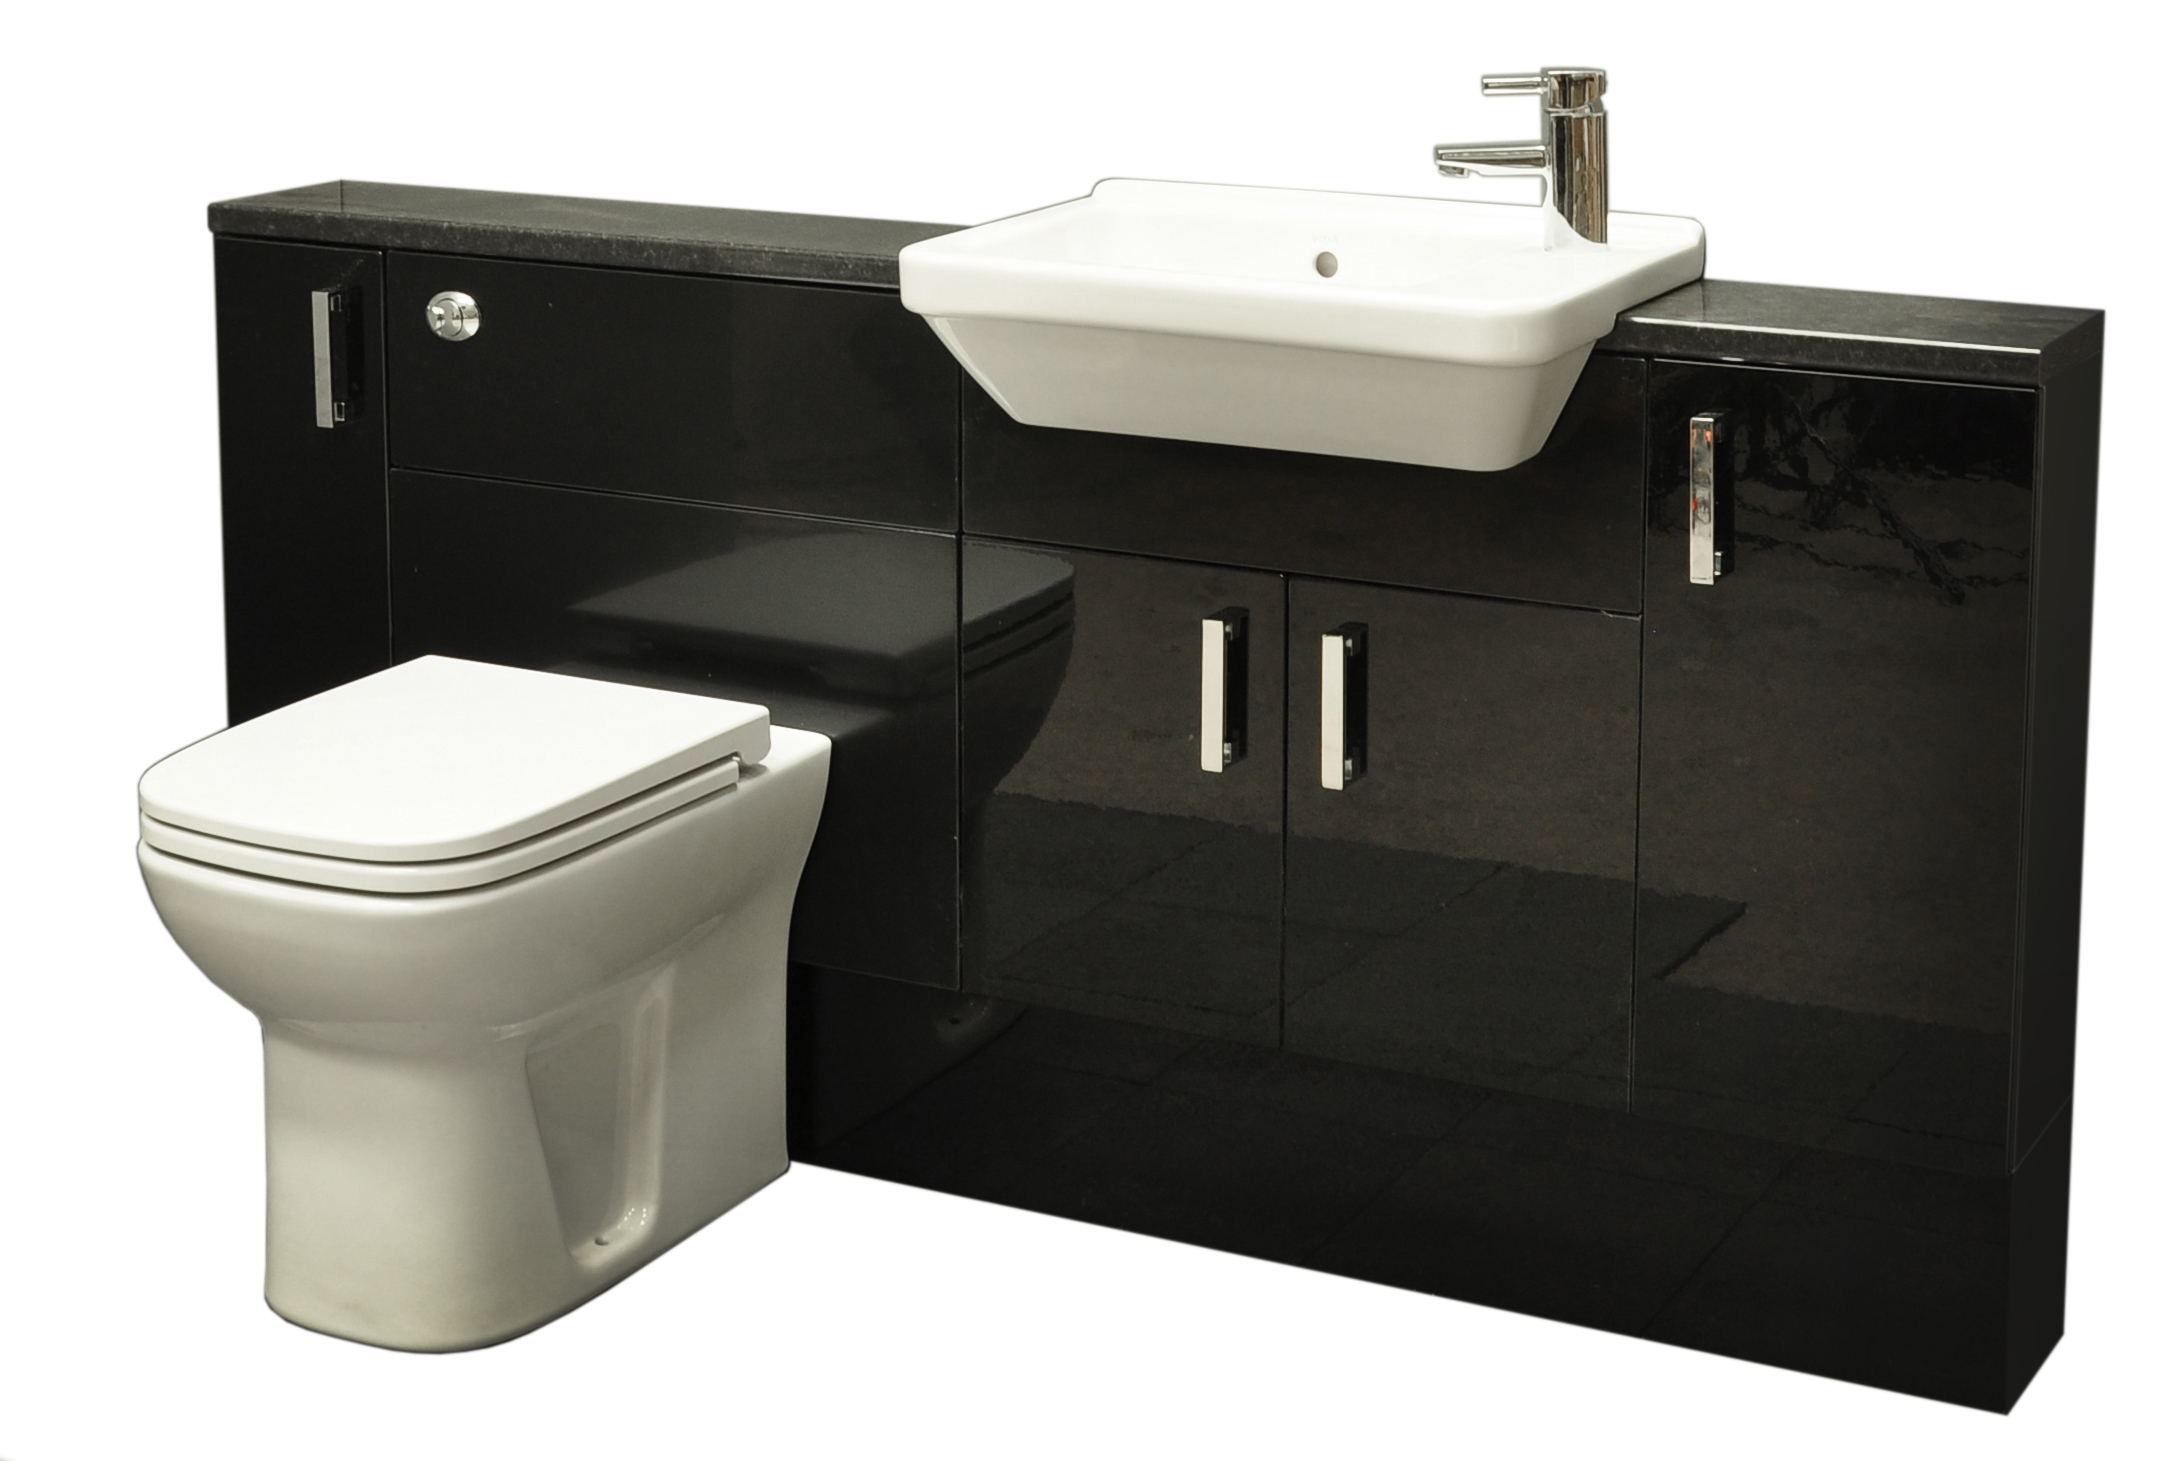 Simple Bring Elegance And Sophistication To Your Bathroom With The Victoria  Albert Mandello Volo Vanity With Quality Timber Construction, Sleek Modern Style And A Beautiful Black Gloss Finish  Deliveries For Some Furniture And Mattresses